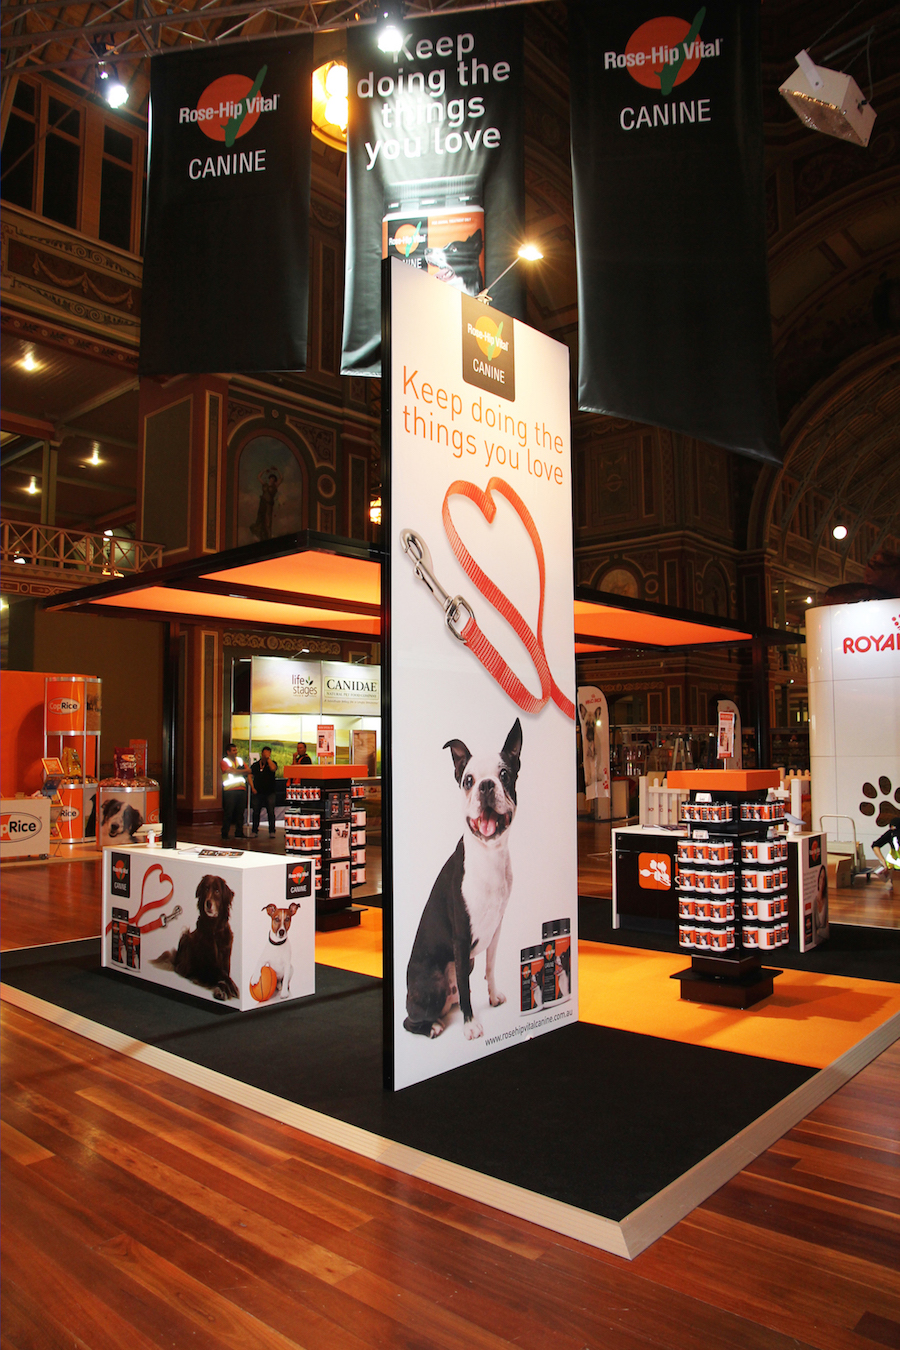 360-display-retail-expo-systems-stands-hire-designers-sydney-melbourne-newcastle-gold-coast-brisbane-Rosehip-3.jpg